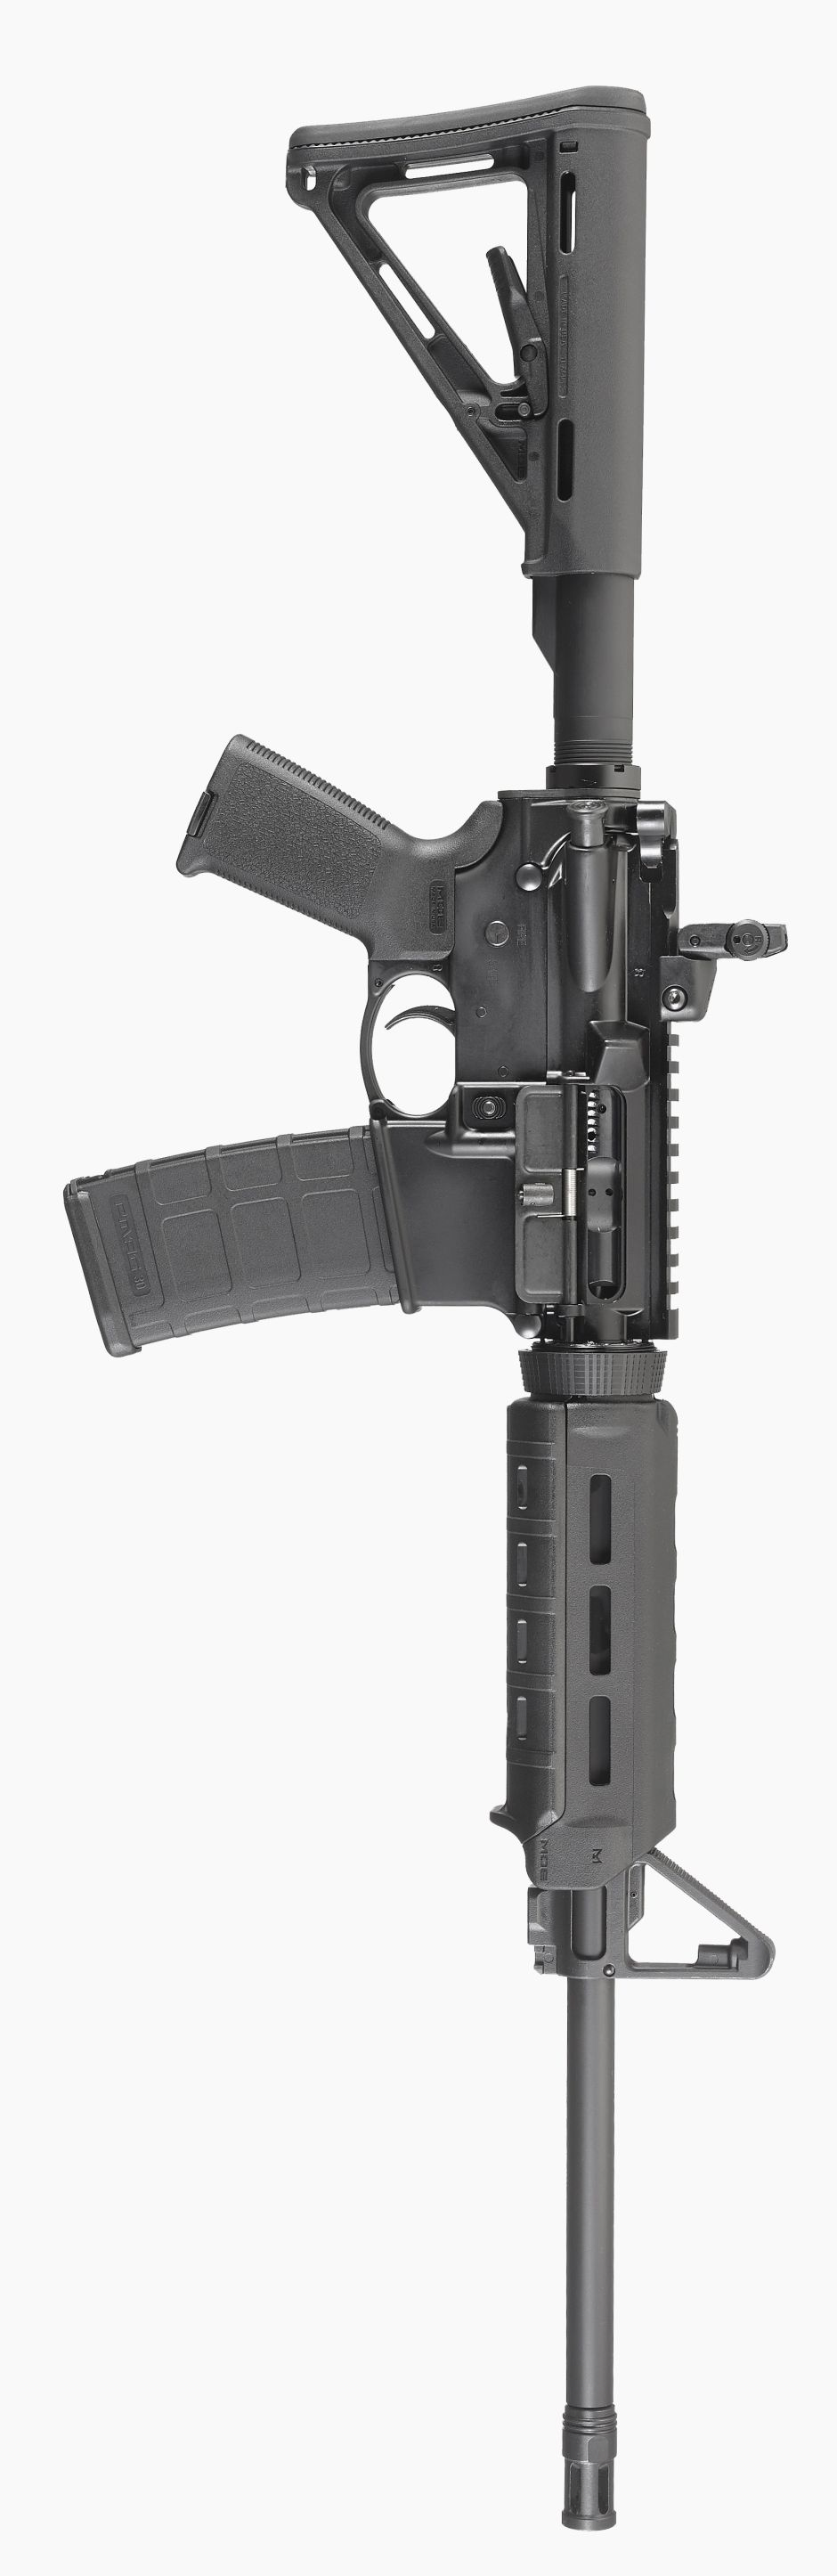 Image of a Ruger AR-15